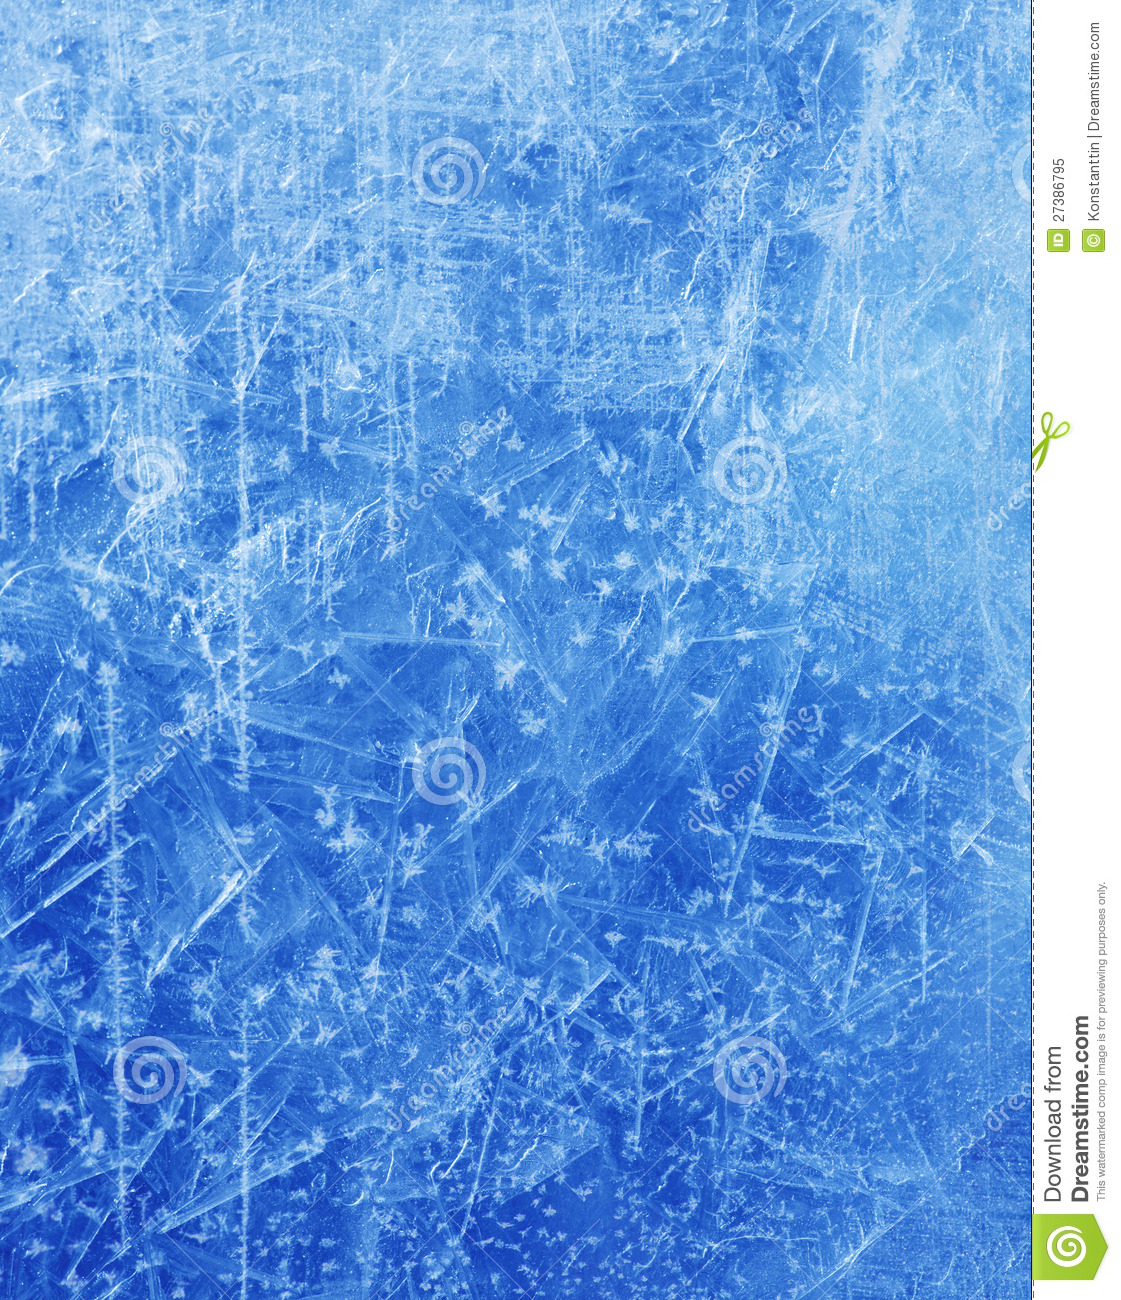 Abstract Christmas Ice texture Winter background